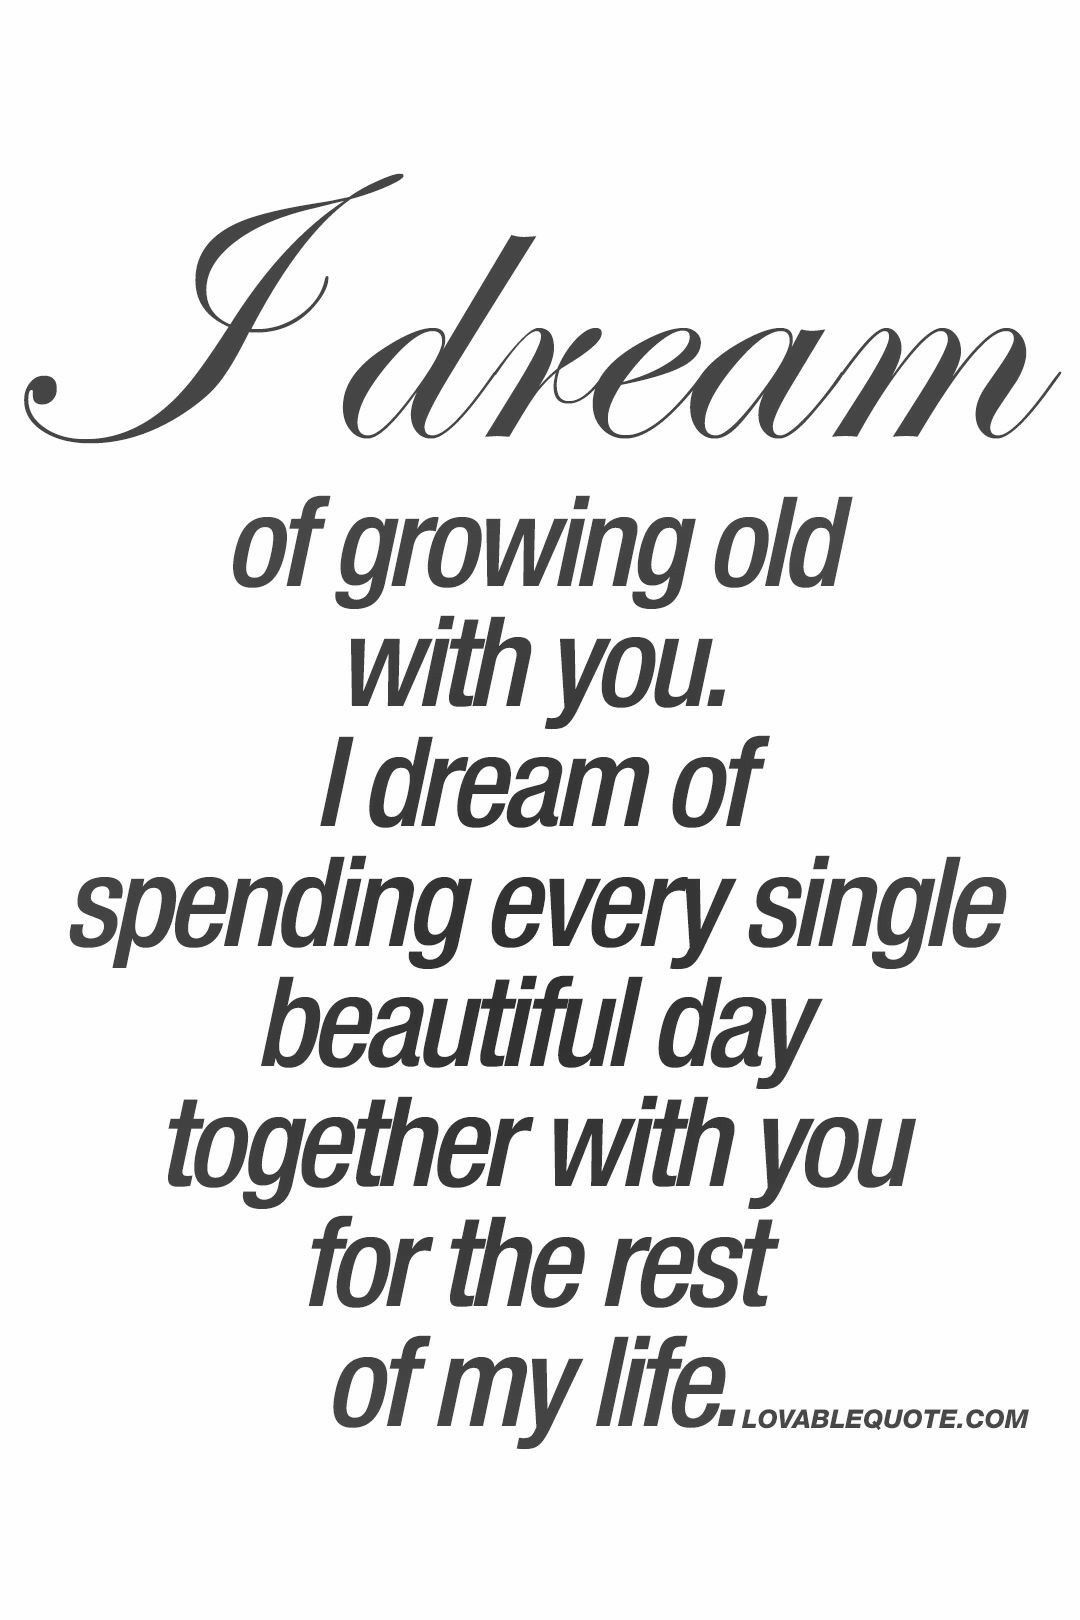 Quotes About Growing Old I Dream Of Growing Old With Youi Dream Of Spending Every Single